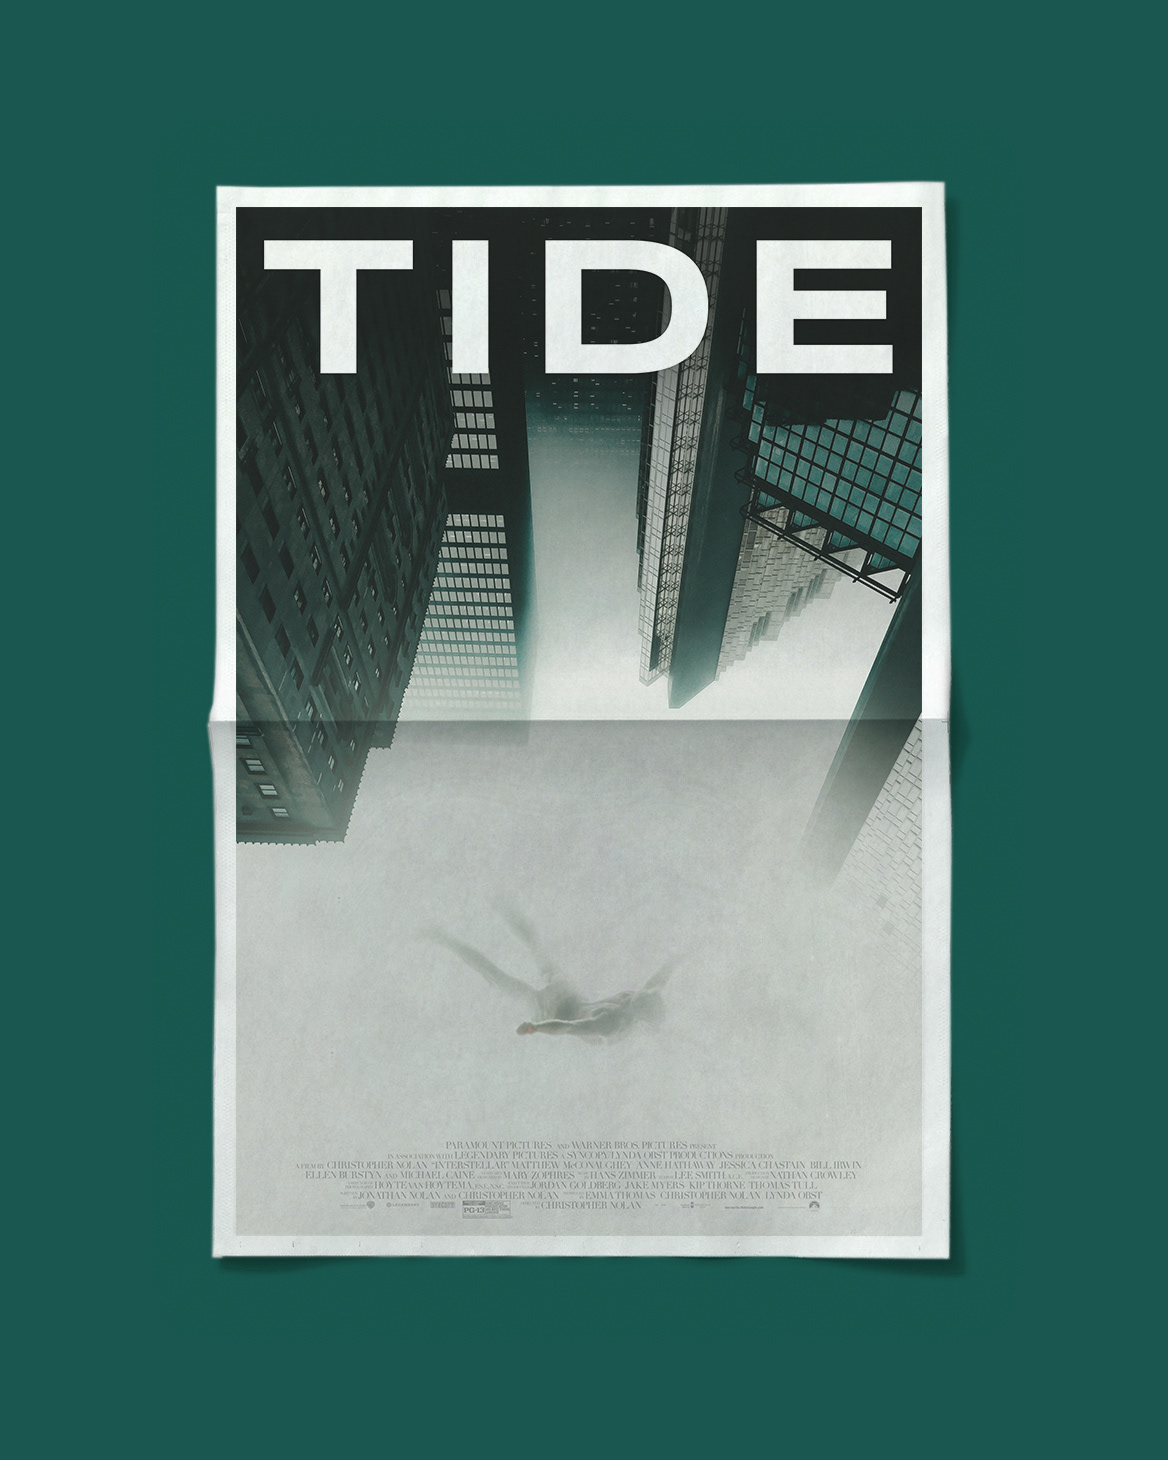 Nelson Yanowitz - TIDE: An experiment on font use in movies